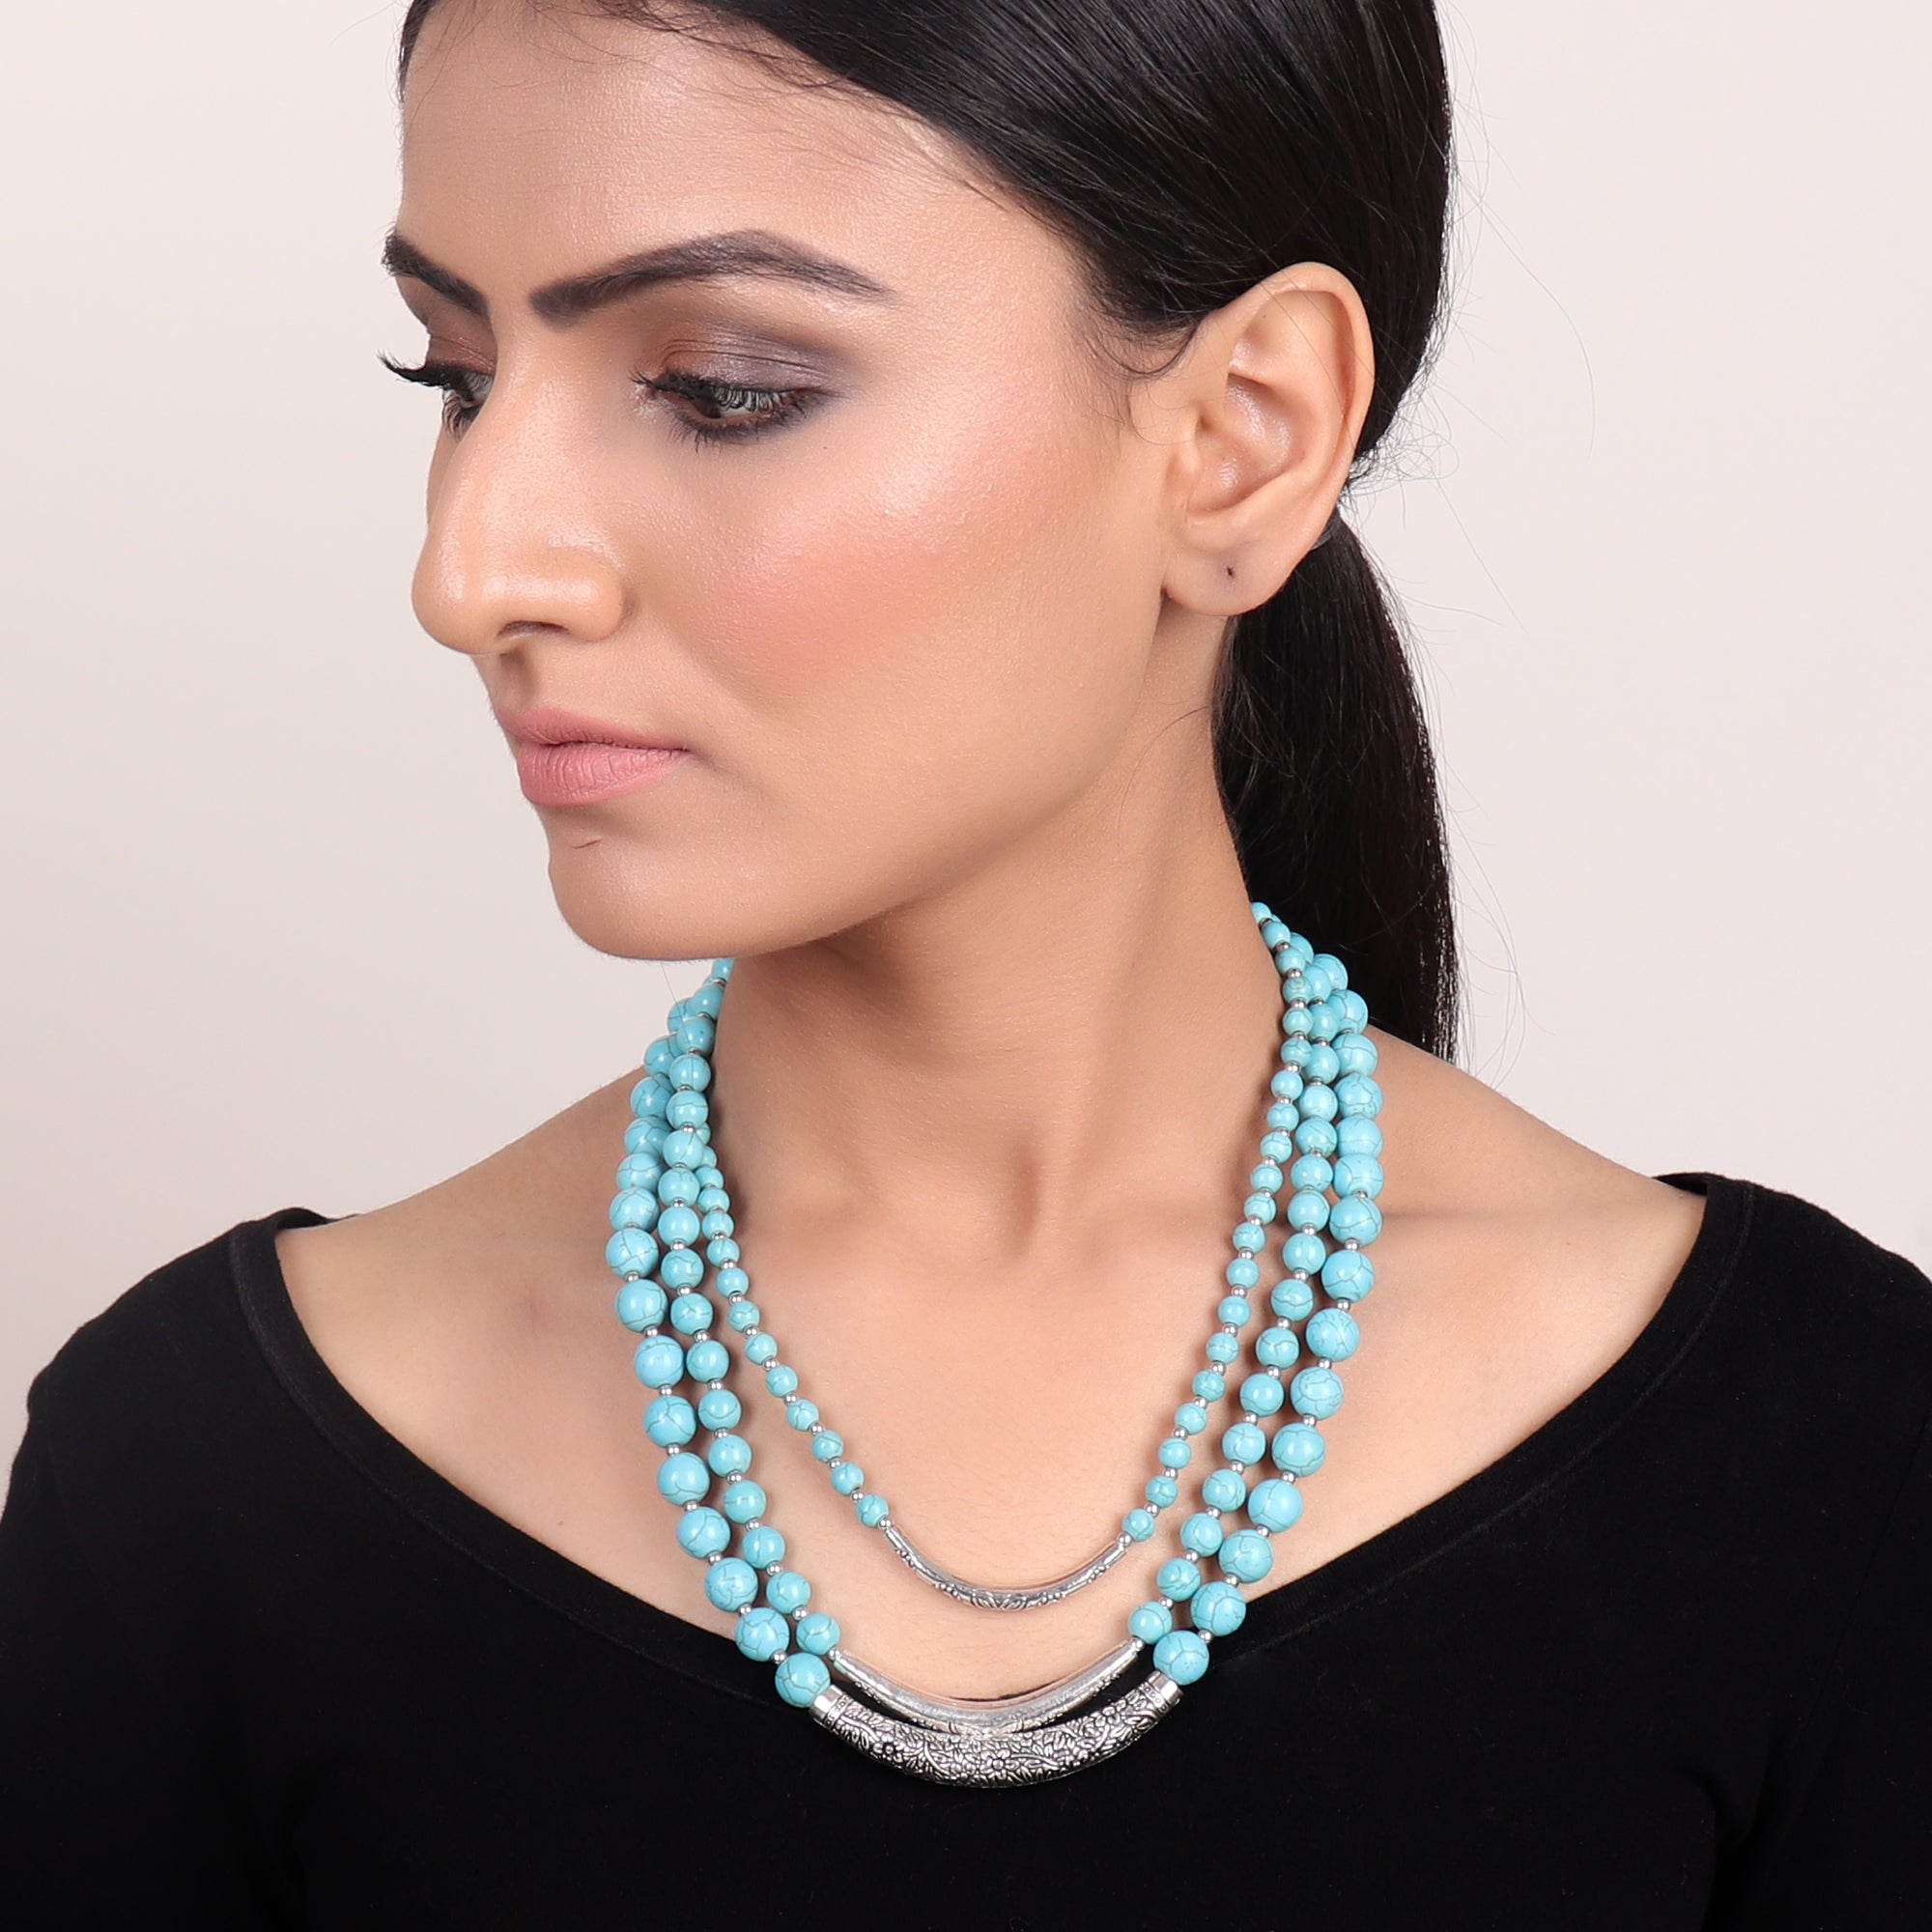 Necklace,Turquoise Beaded Three-layered Necklace - Cippele Multi Store